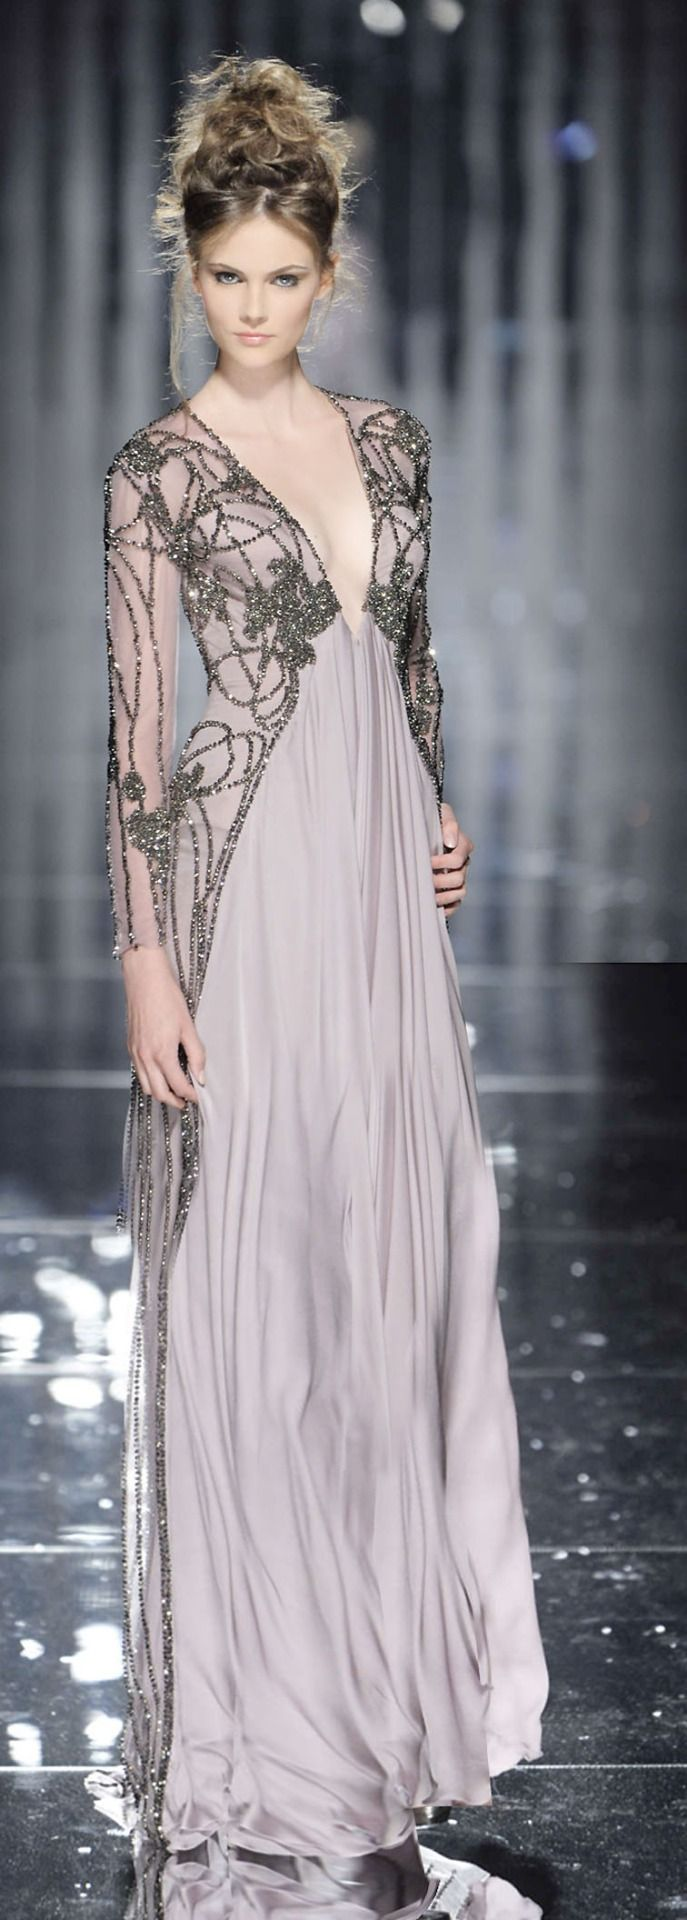 Abed Mahfouz 2015. Maybe buying a simple maxi dress with a nice lace cardigan would create a similar effect.